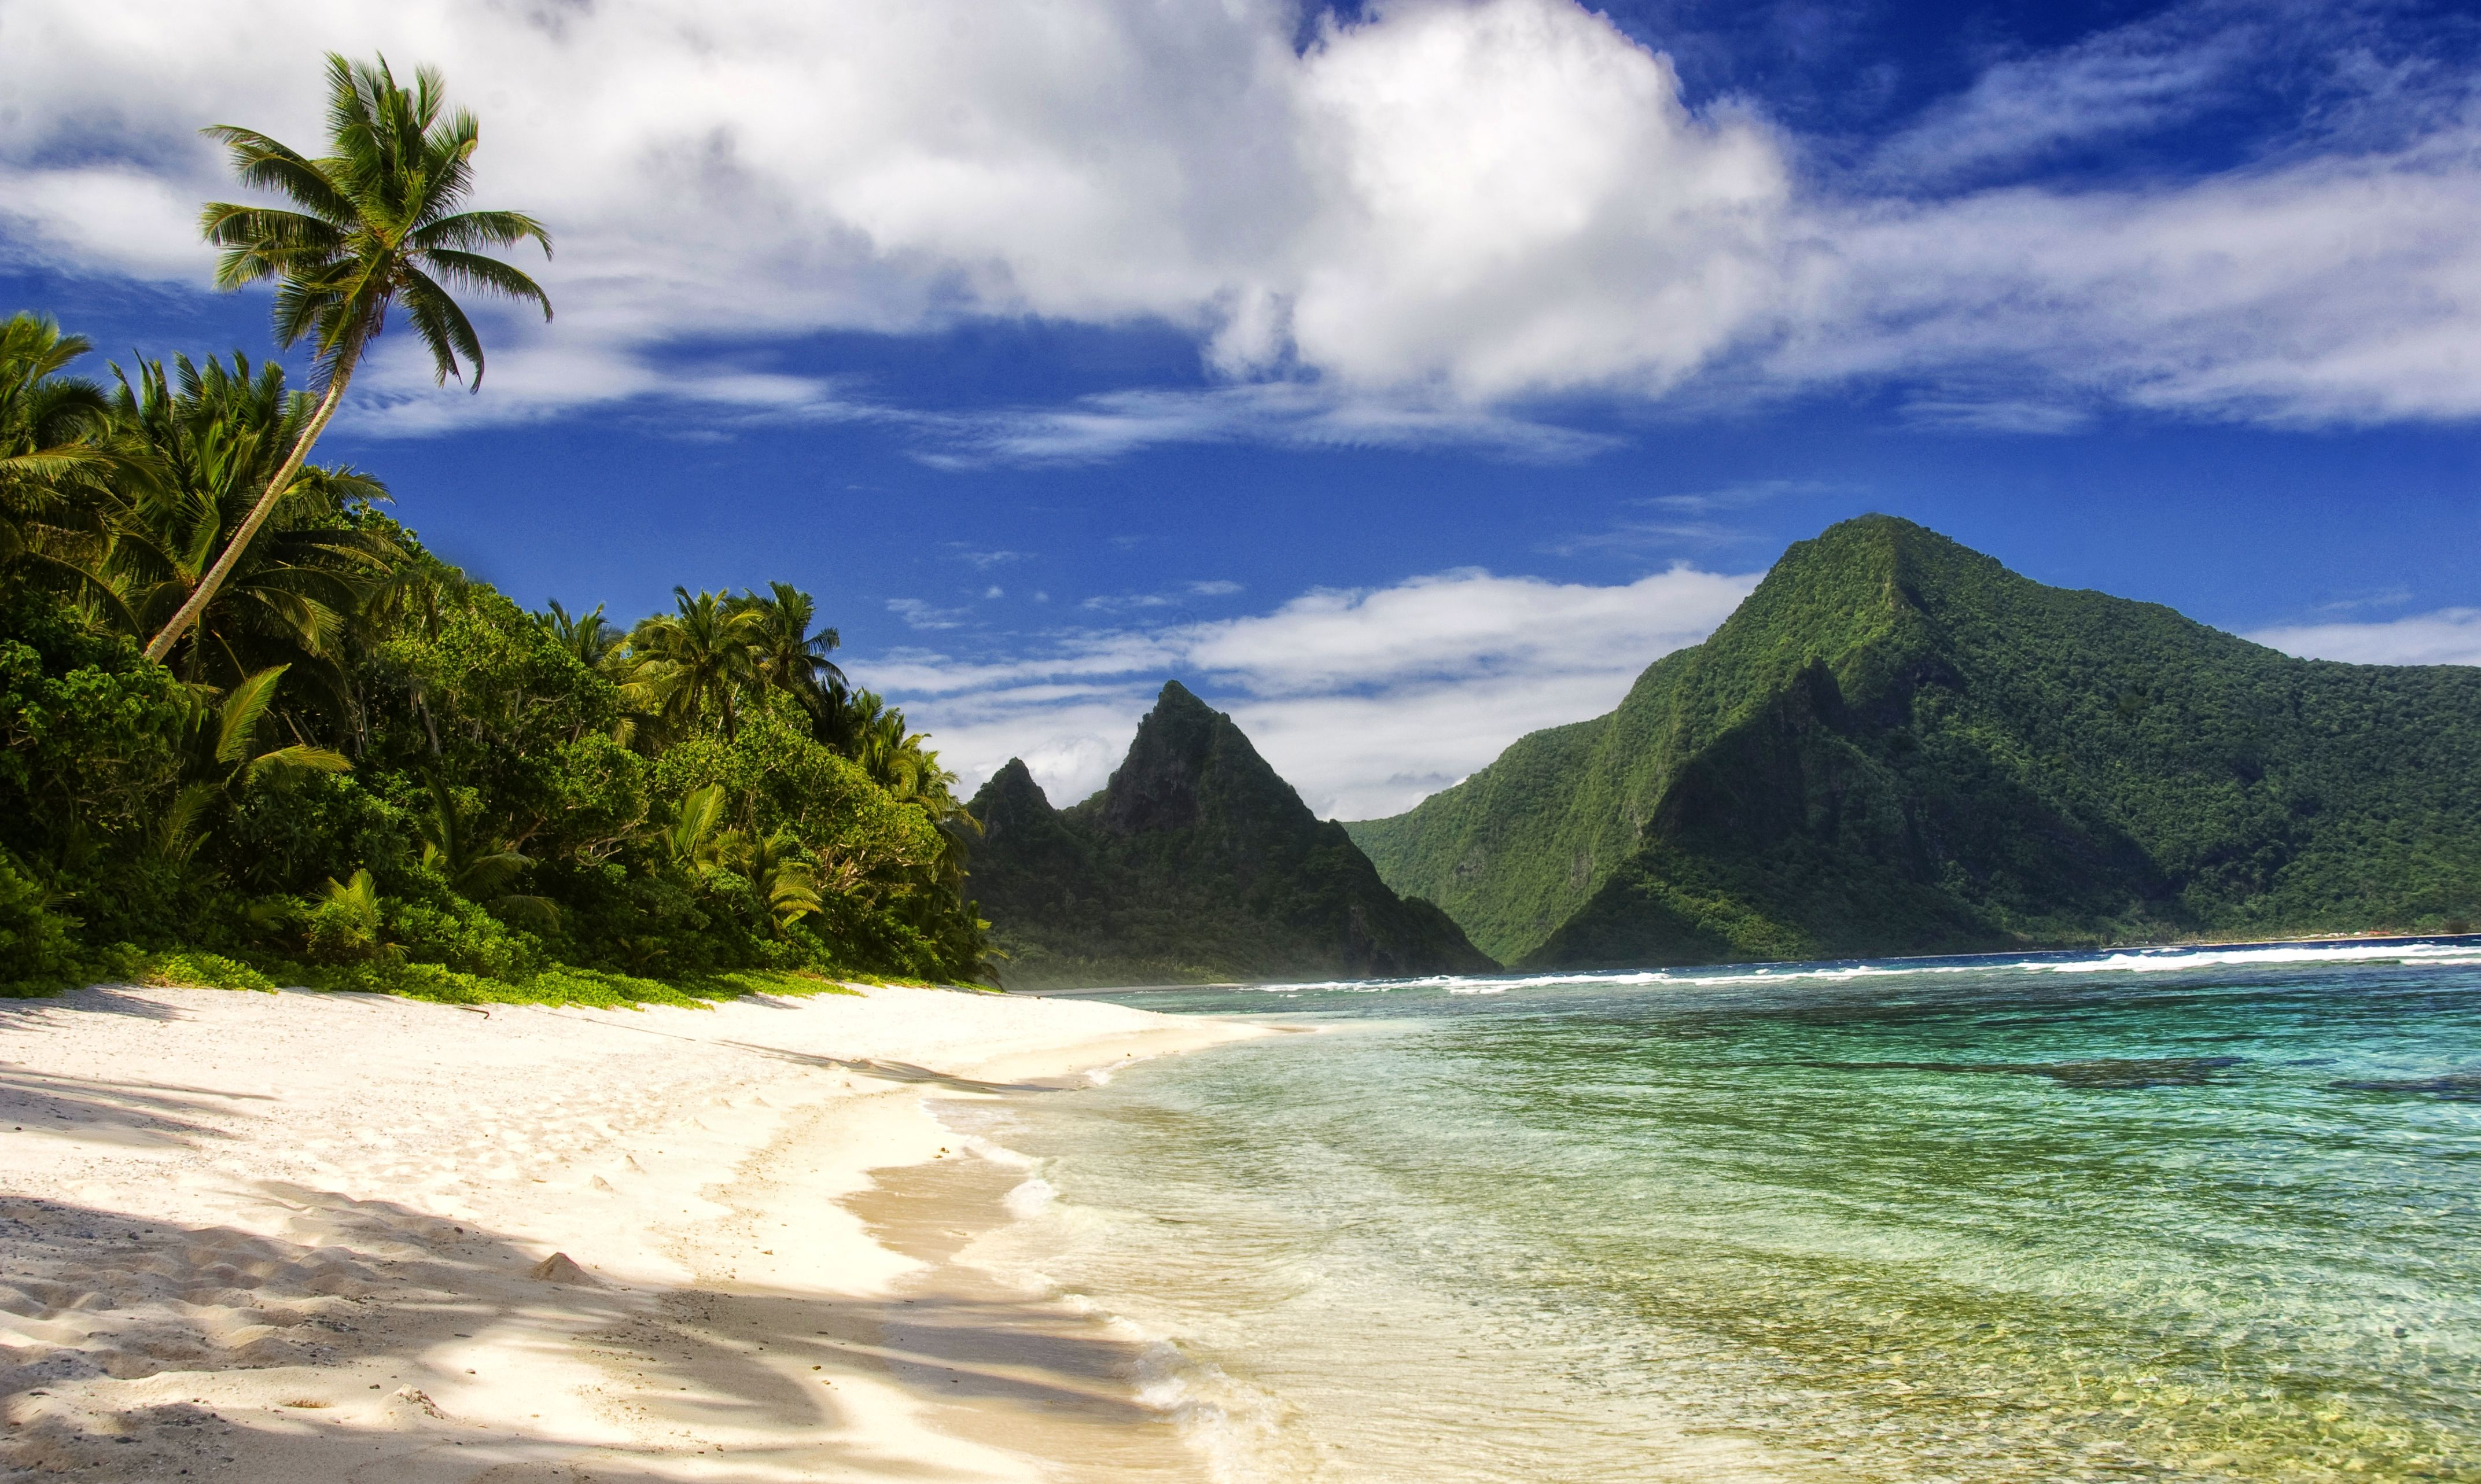 HD Images Samoa Collection